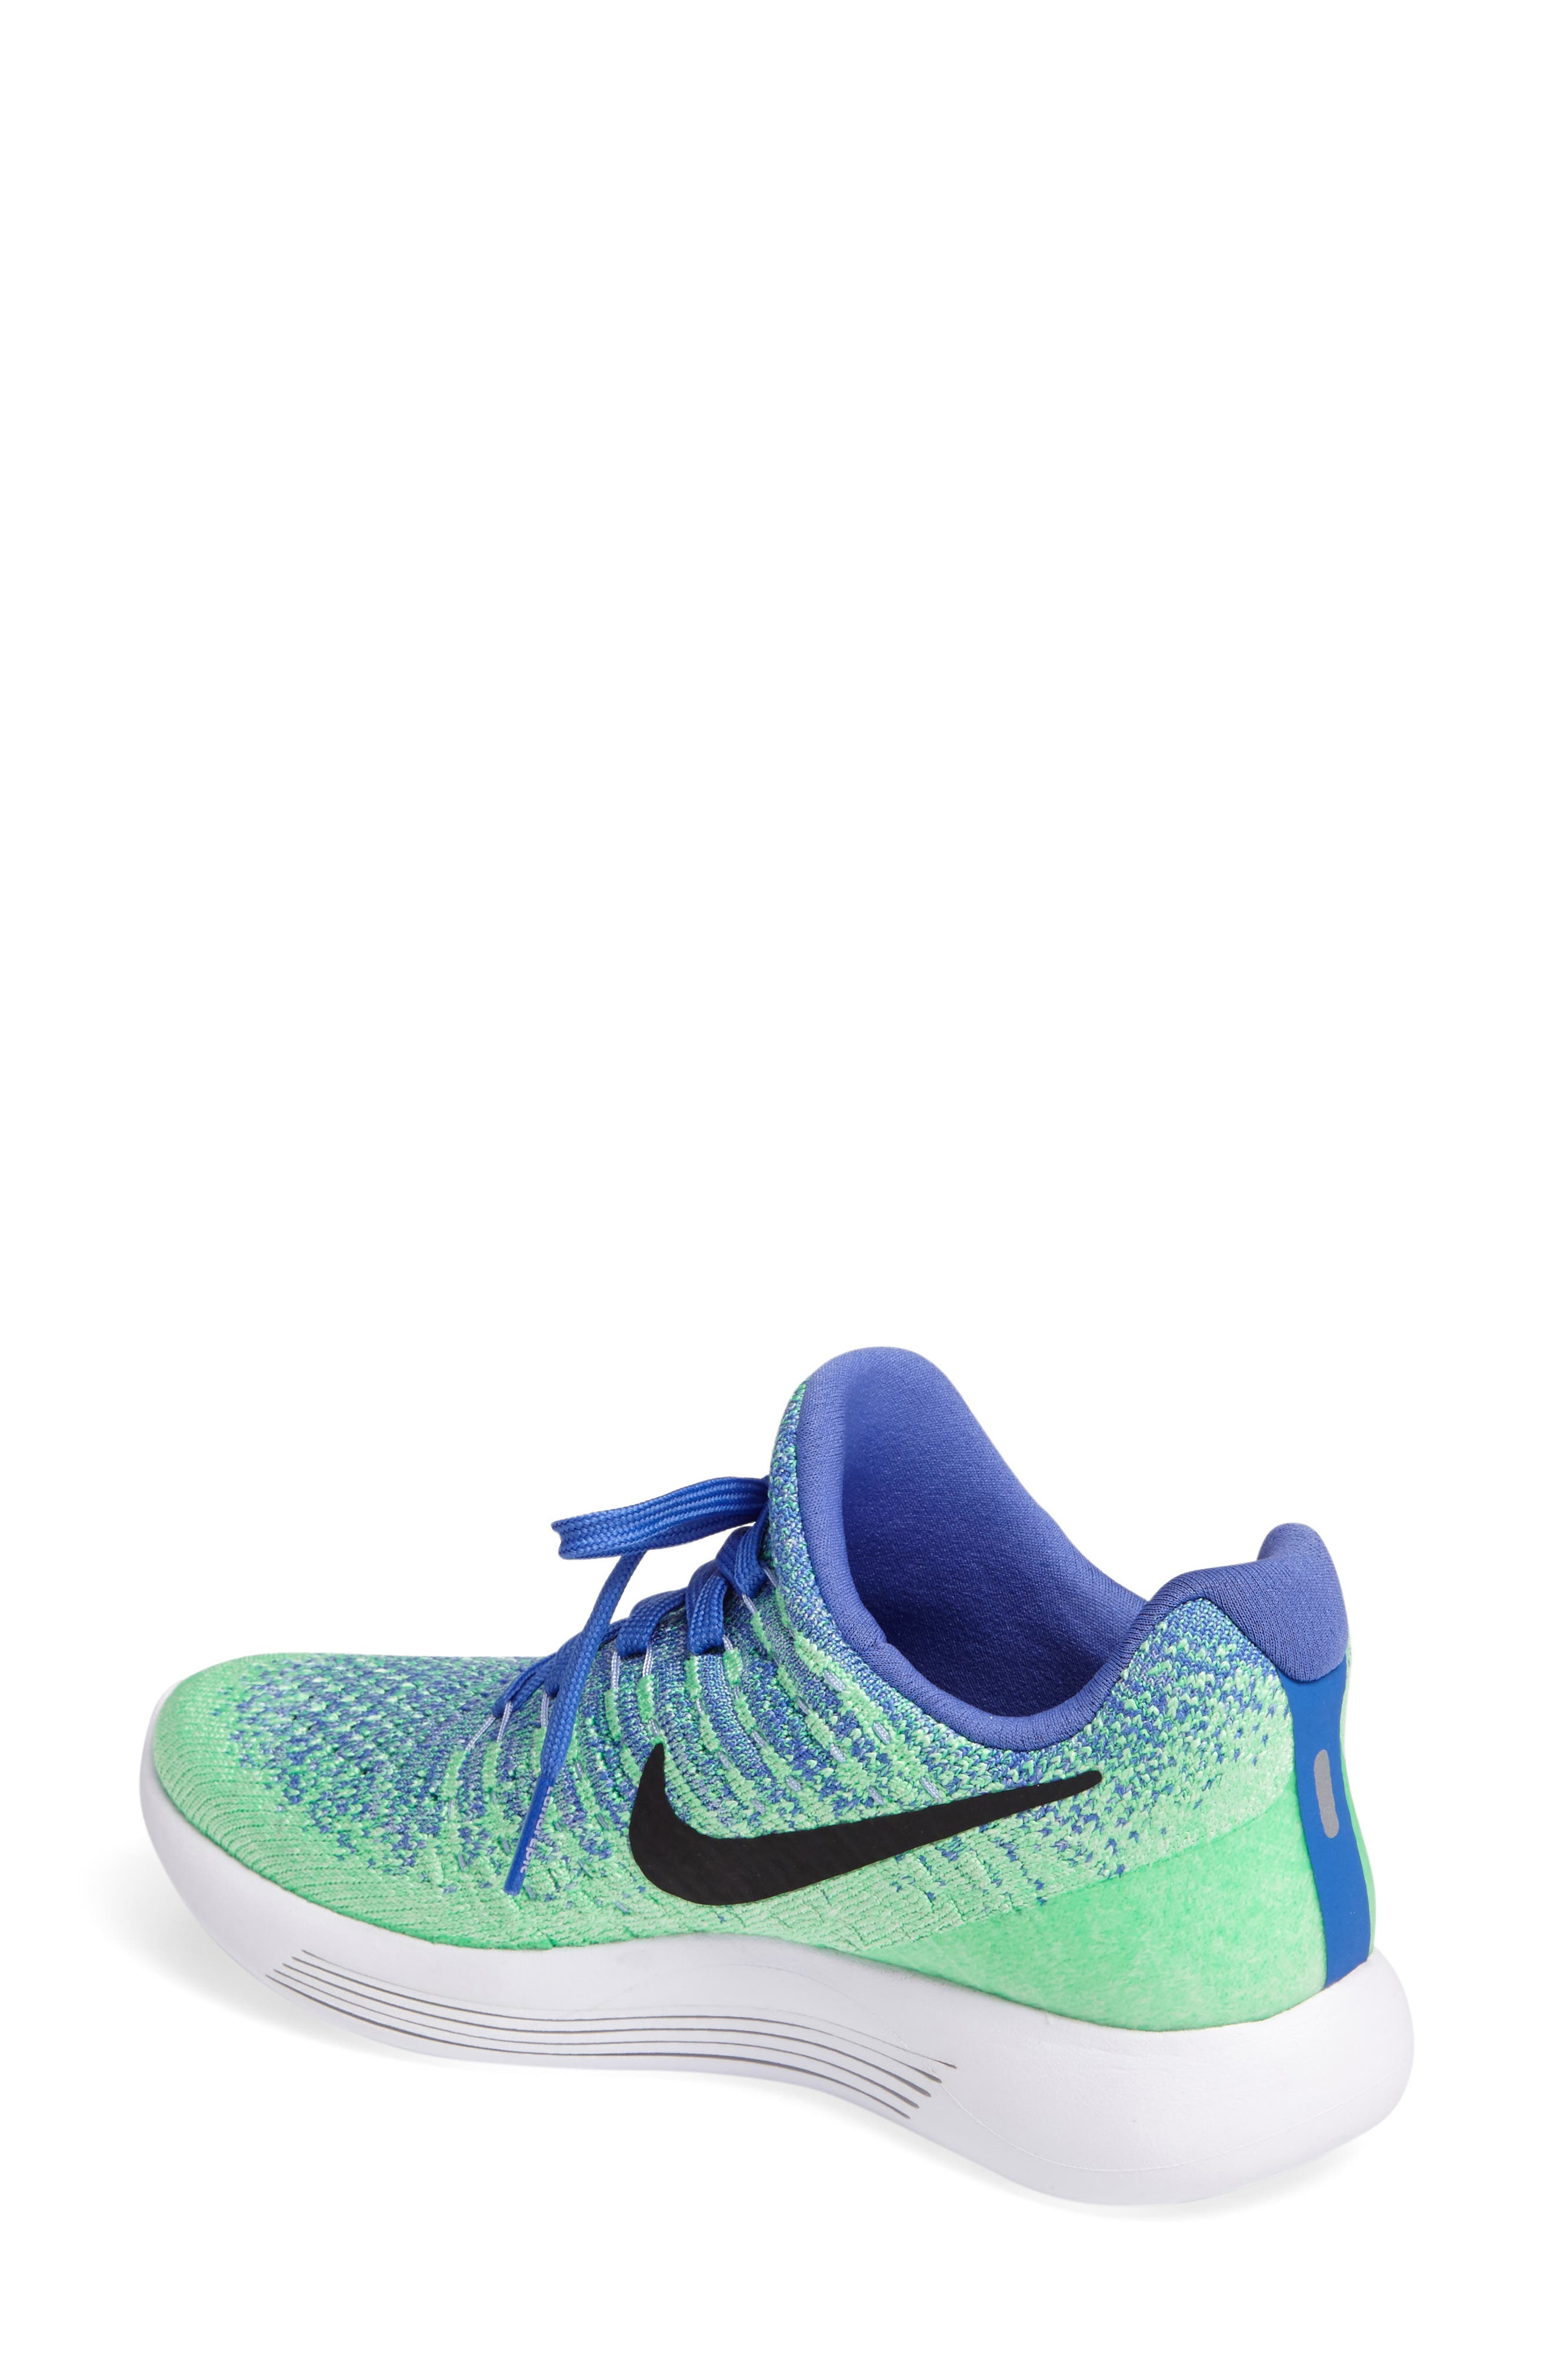 ,                             LunarEpic Low Flyknit 2 Running Shoe,                             Alternate thumbnail 66, color,                             401